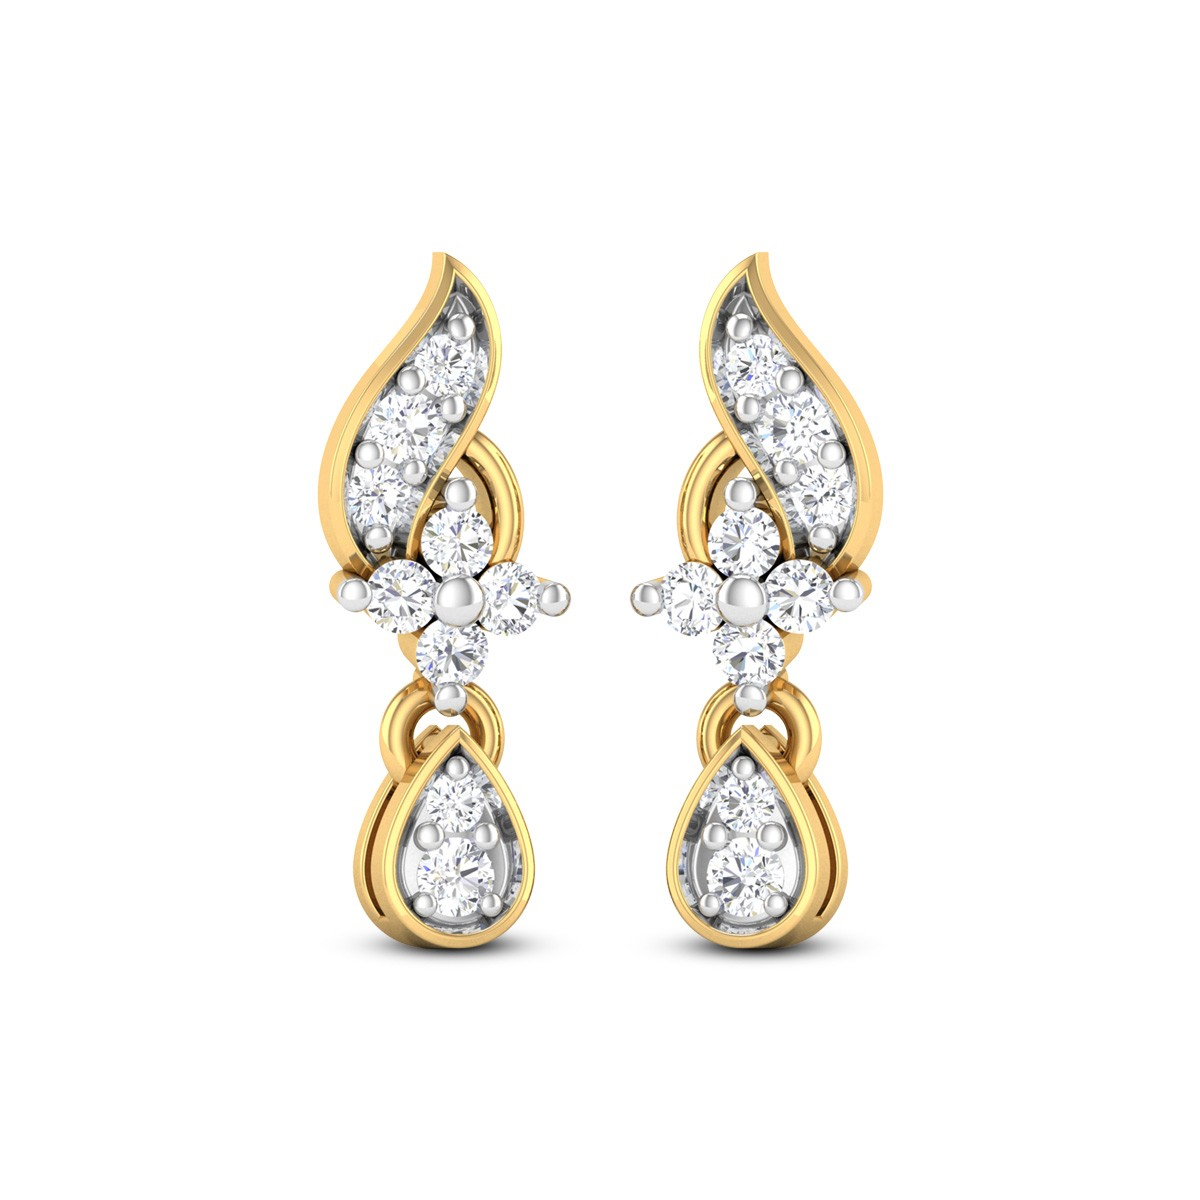 Nerissa Diamond Earrings